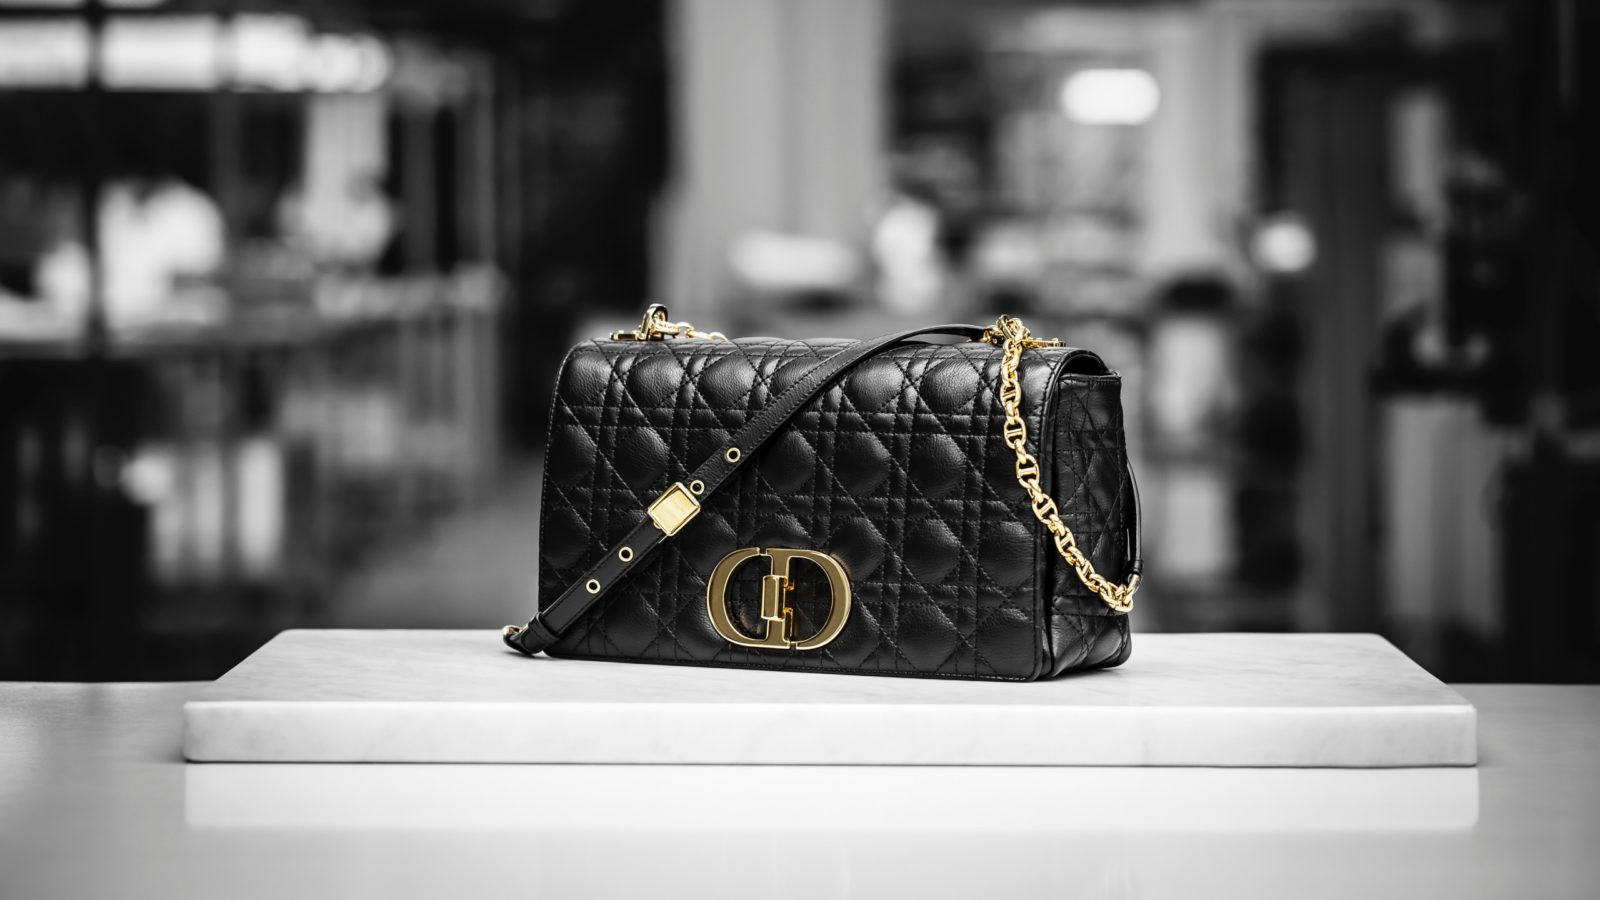 Introducing the new Dior Caro handbag from the Cruise 2021 collection